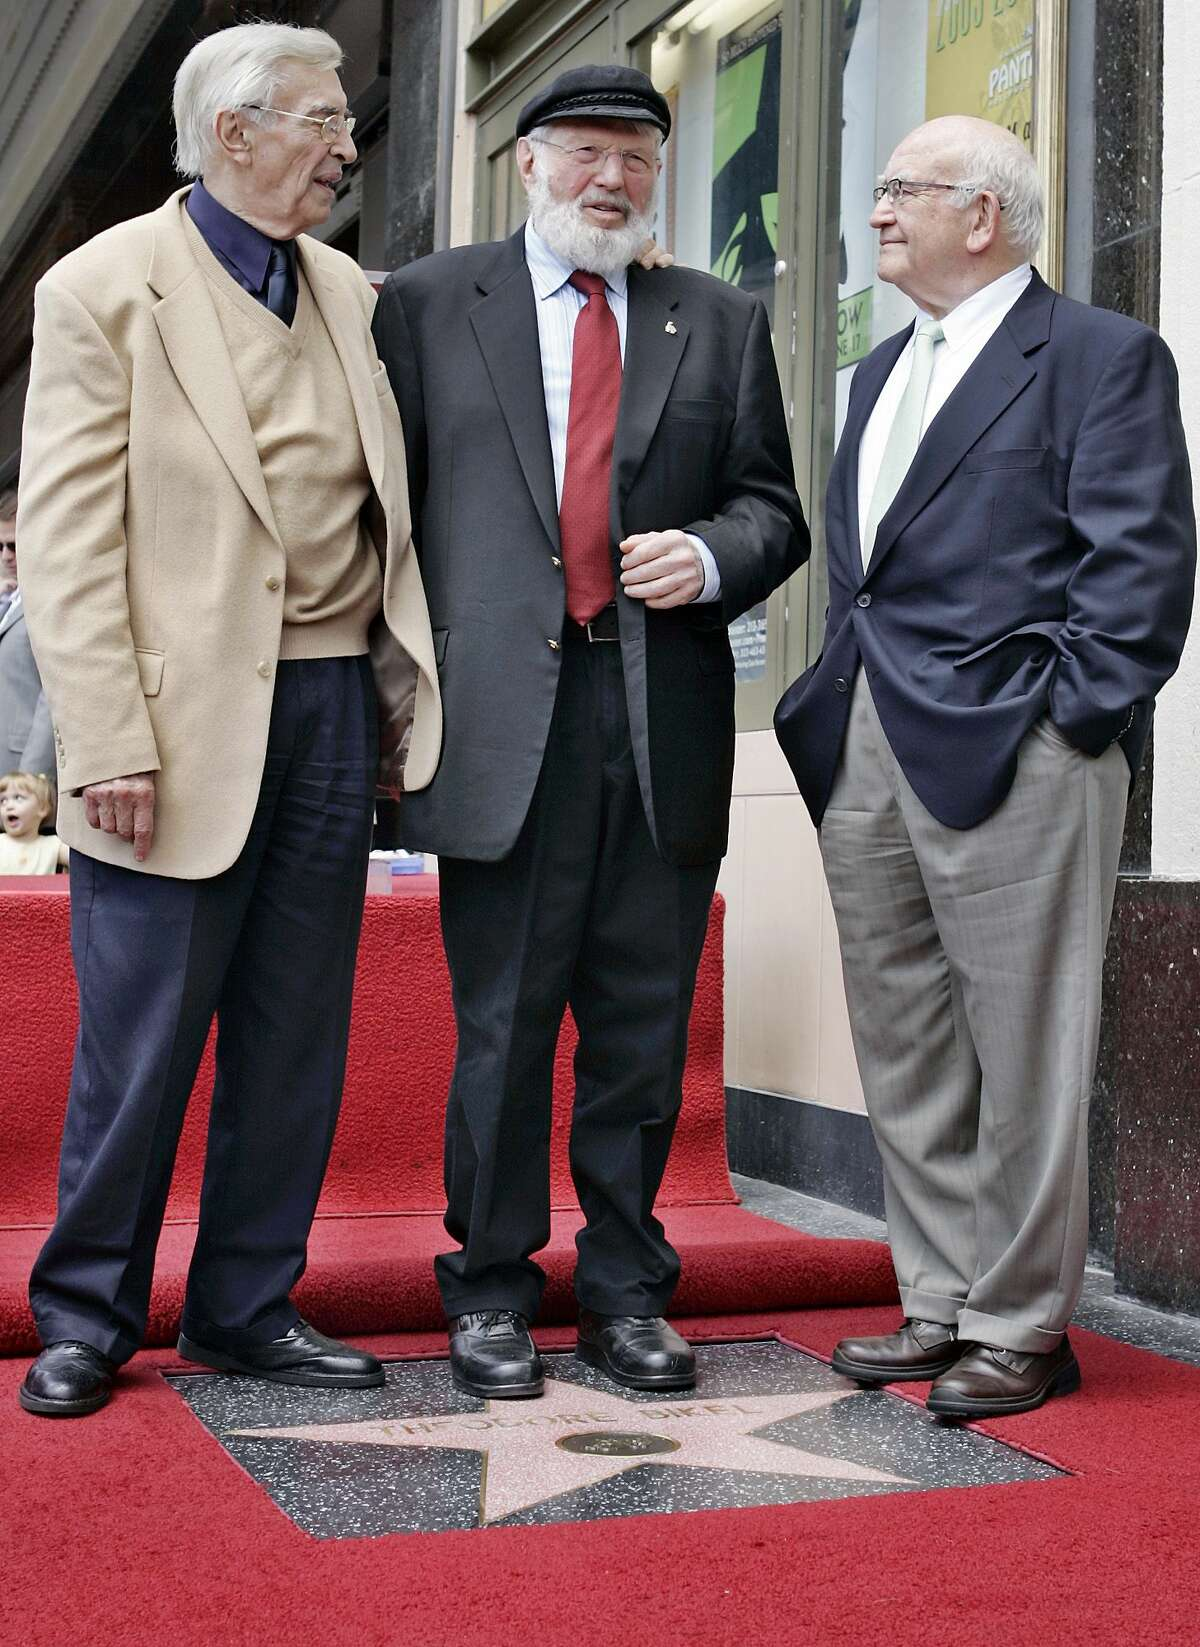 In this file photo, Theodore Bikel, center, with fellow actors Martin Landau, left, and Ed Asner, poses for photos during a dedication ceremony for Bikel's star on the Hollywood Walk of Fame in Los Angeles. Bikel, the Tony- and Oscar-nominated actor and singer whose passions included folk music and political activism, died Tuesday morning of natural causes at UCLA Medical Center in Los Angeles, said his agent Robert Malcolm. He was 91.